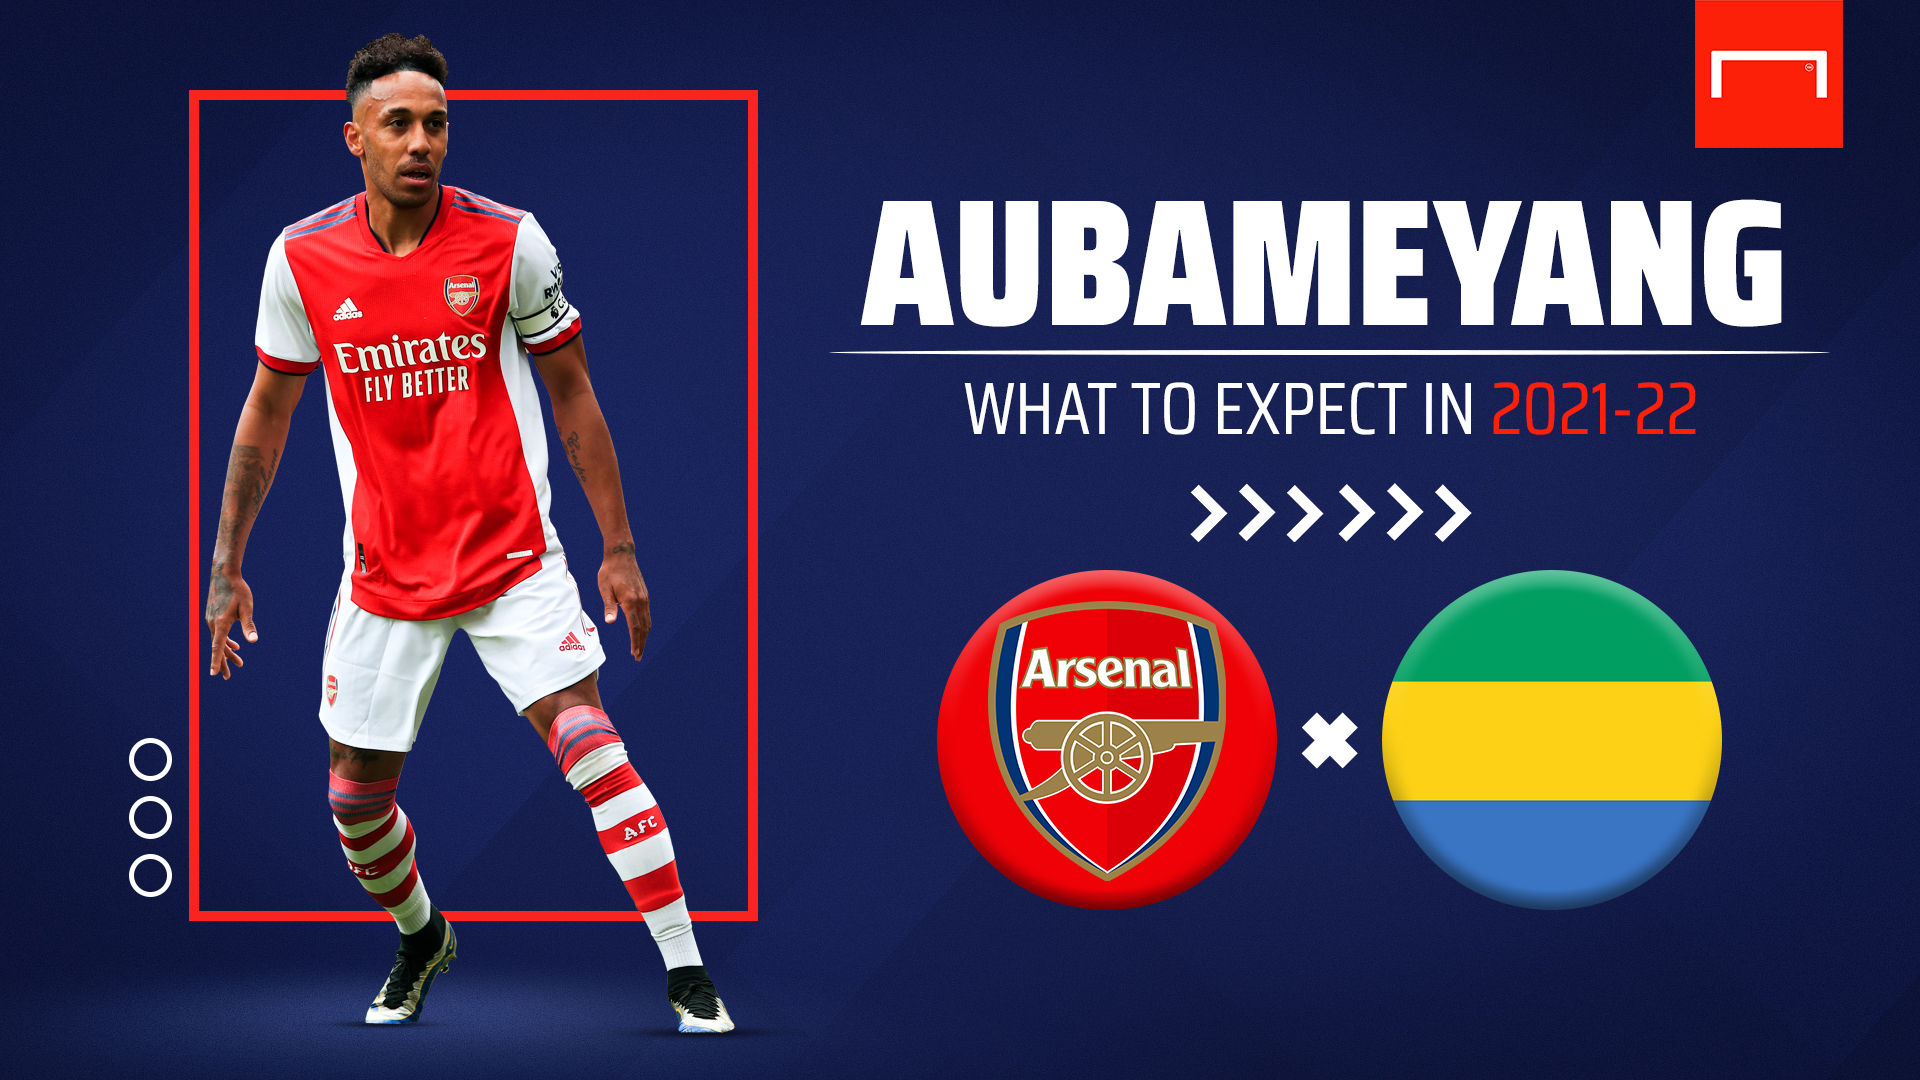 Pierre-Emerick Aubameyang: What to expect in 2021-22